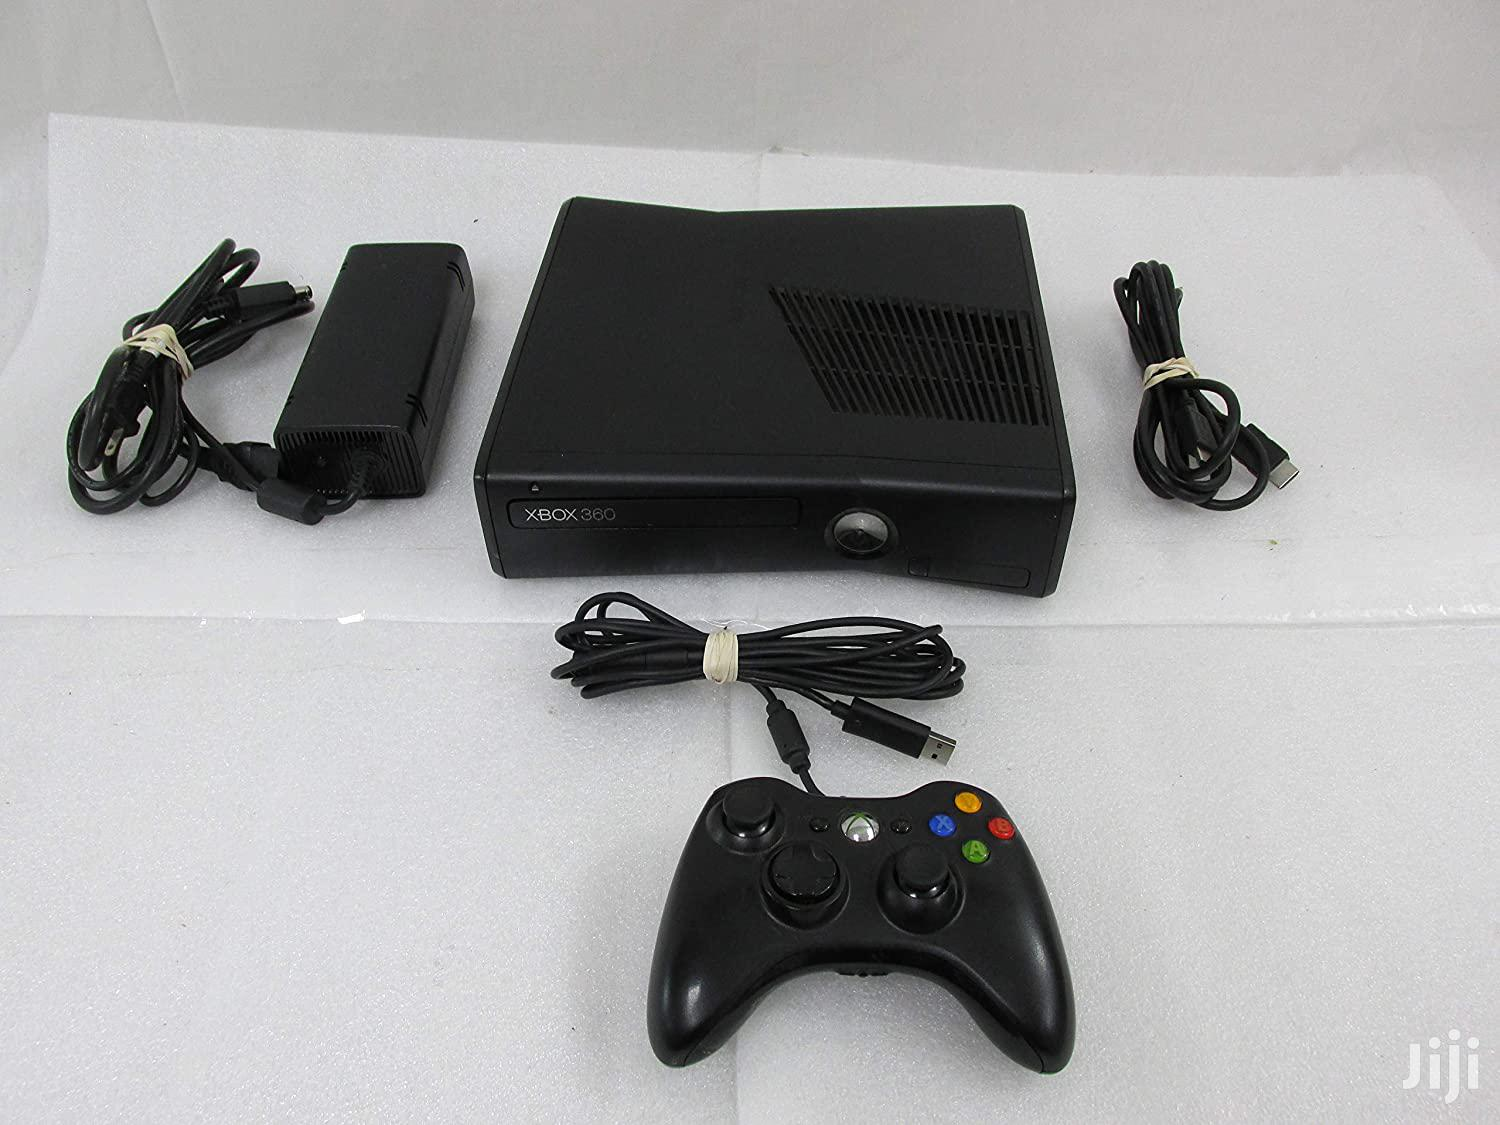 Archive: Xbox 360 With Free Games.